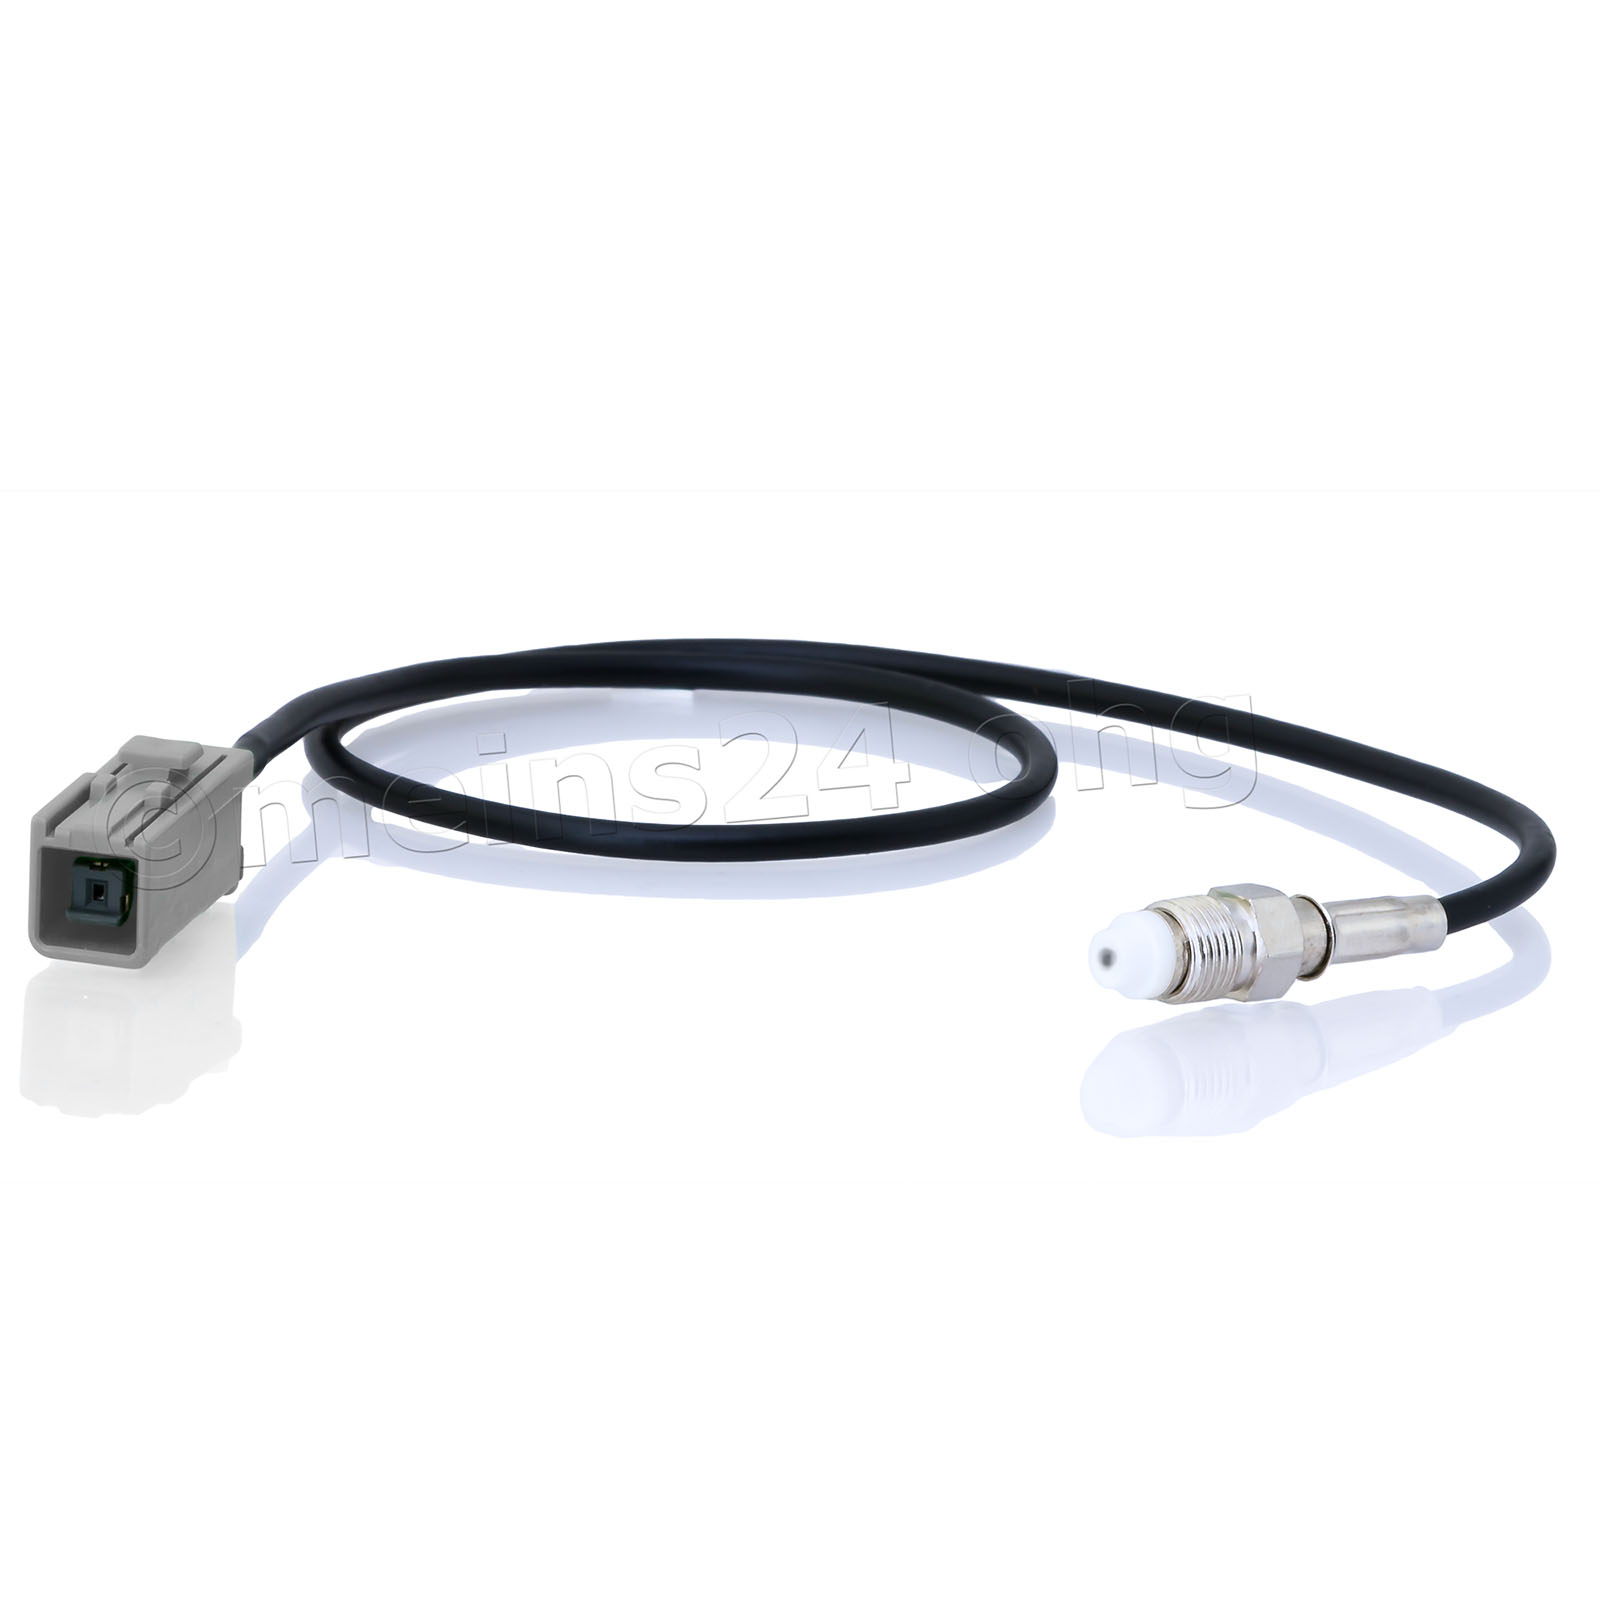 Antennenadapter GT5 1S 1PP Buchse (f) -> FME Buchse (f)